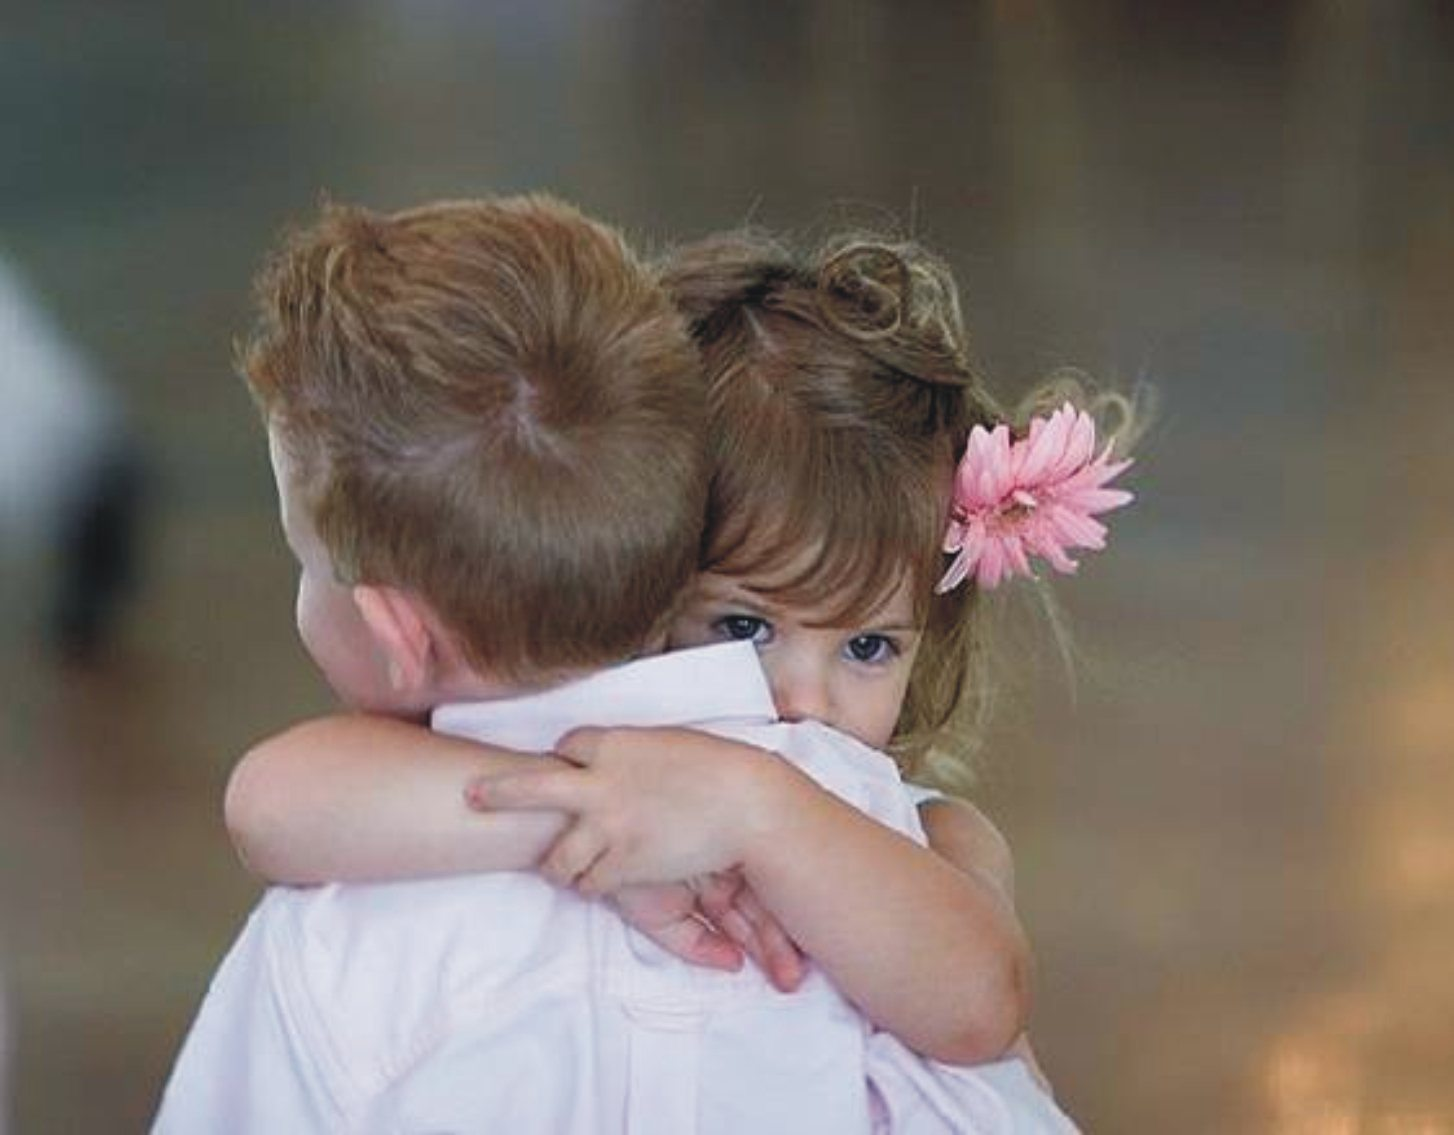 happy-hug-day-hd-images